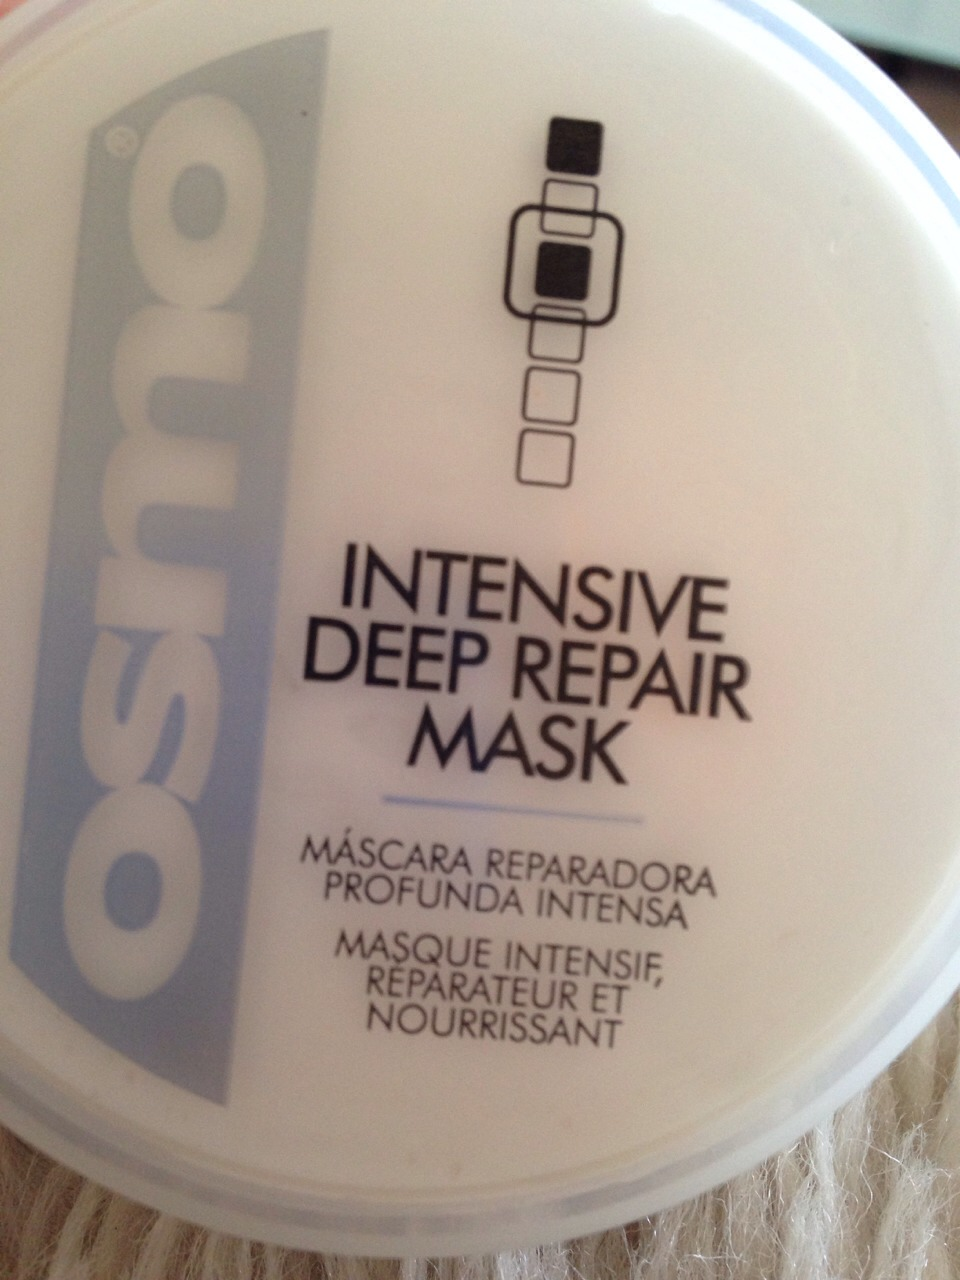 Hair mask is good for damages hair and to strengthen hair.  shampoo hair like normal then towel dry hair and apply the mask to the towel dried hair and apply heat to the hair for 5 minutes allowing the cuticle to obsorbe the conditioner